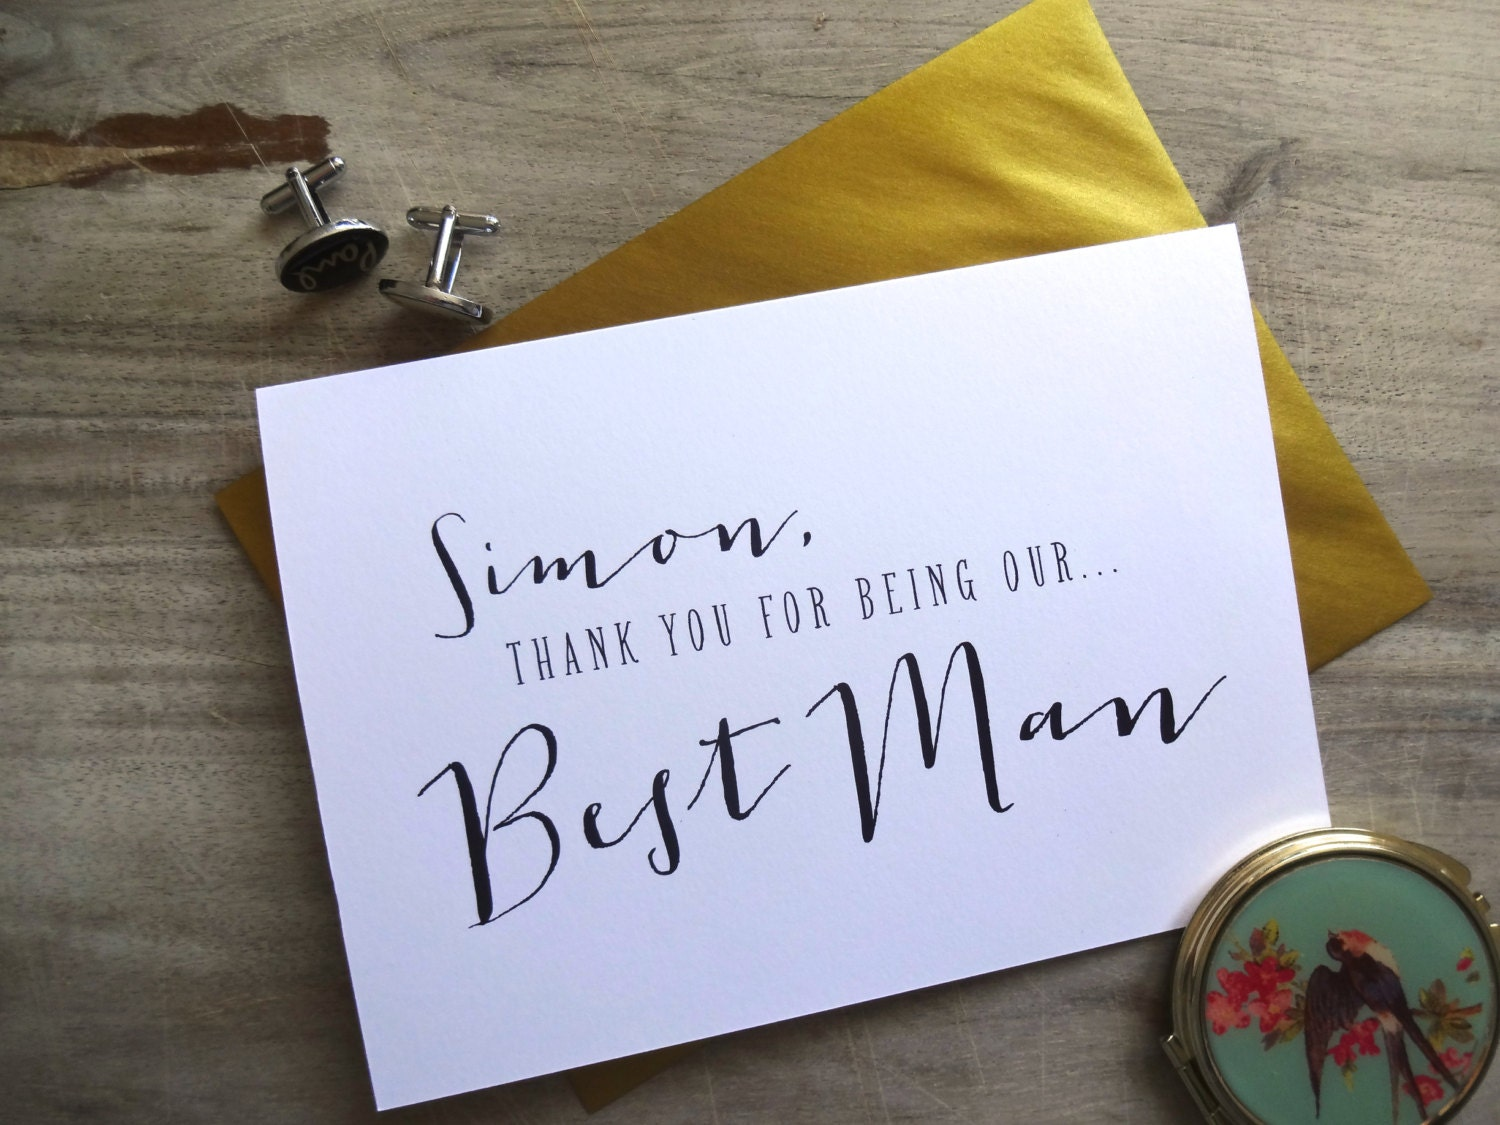 Thank You for being Our Best Man on our Wedding Day Card. 5x7. To My Best Man Card Wedding Card.  Gift to Best Man Card for Groom.